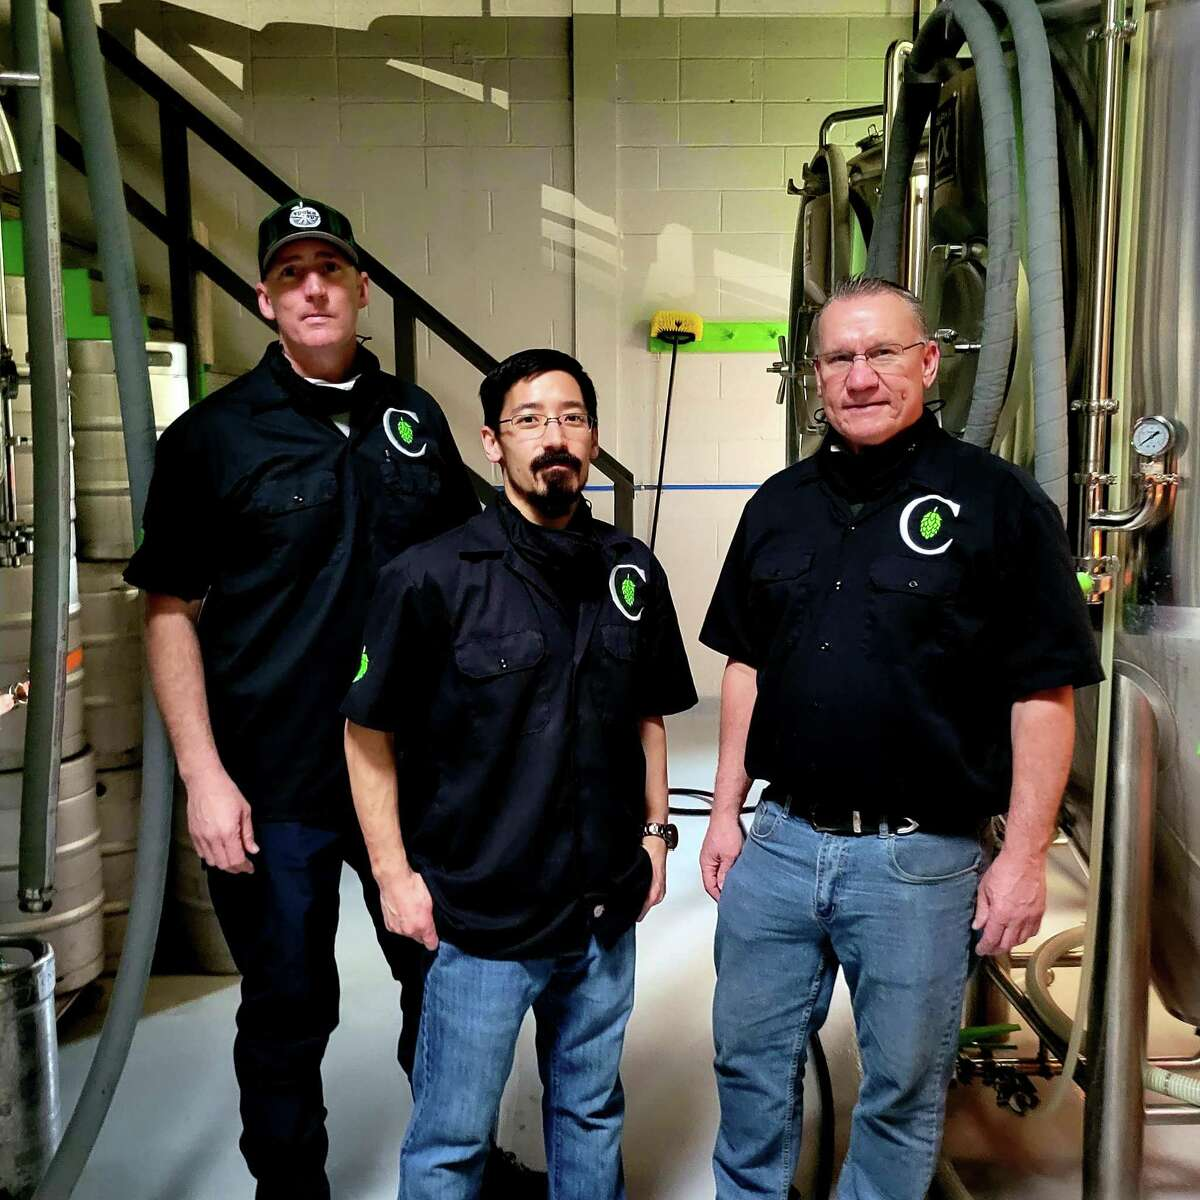 From left are Drew France, Brian Aida and Dave Peichert, co-owners of Concentric Brewing Company at 91 Main St. in Portland.